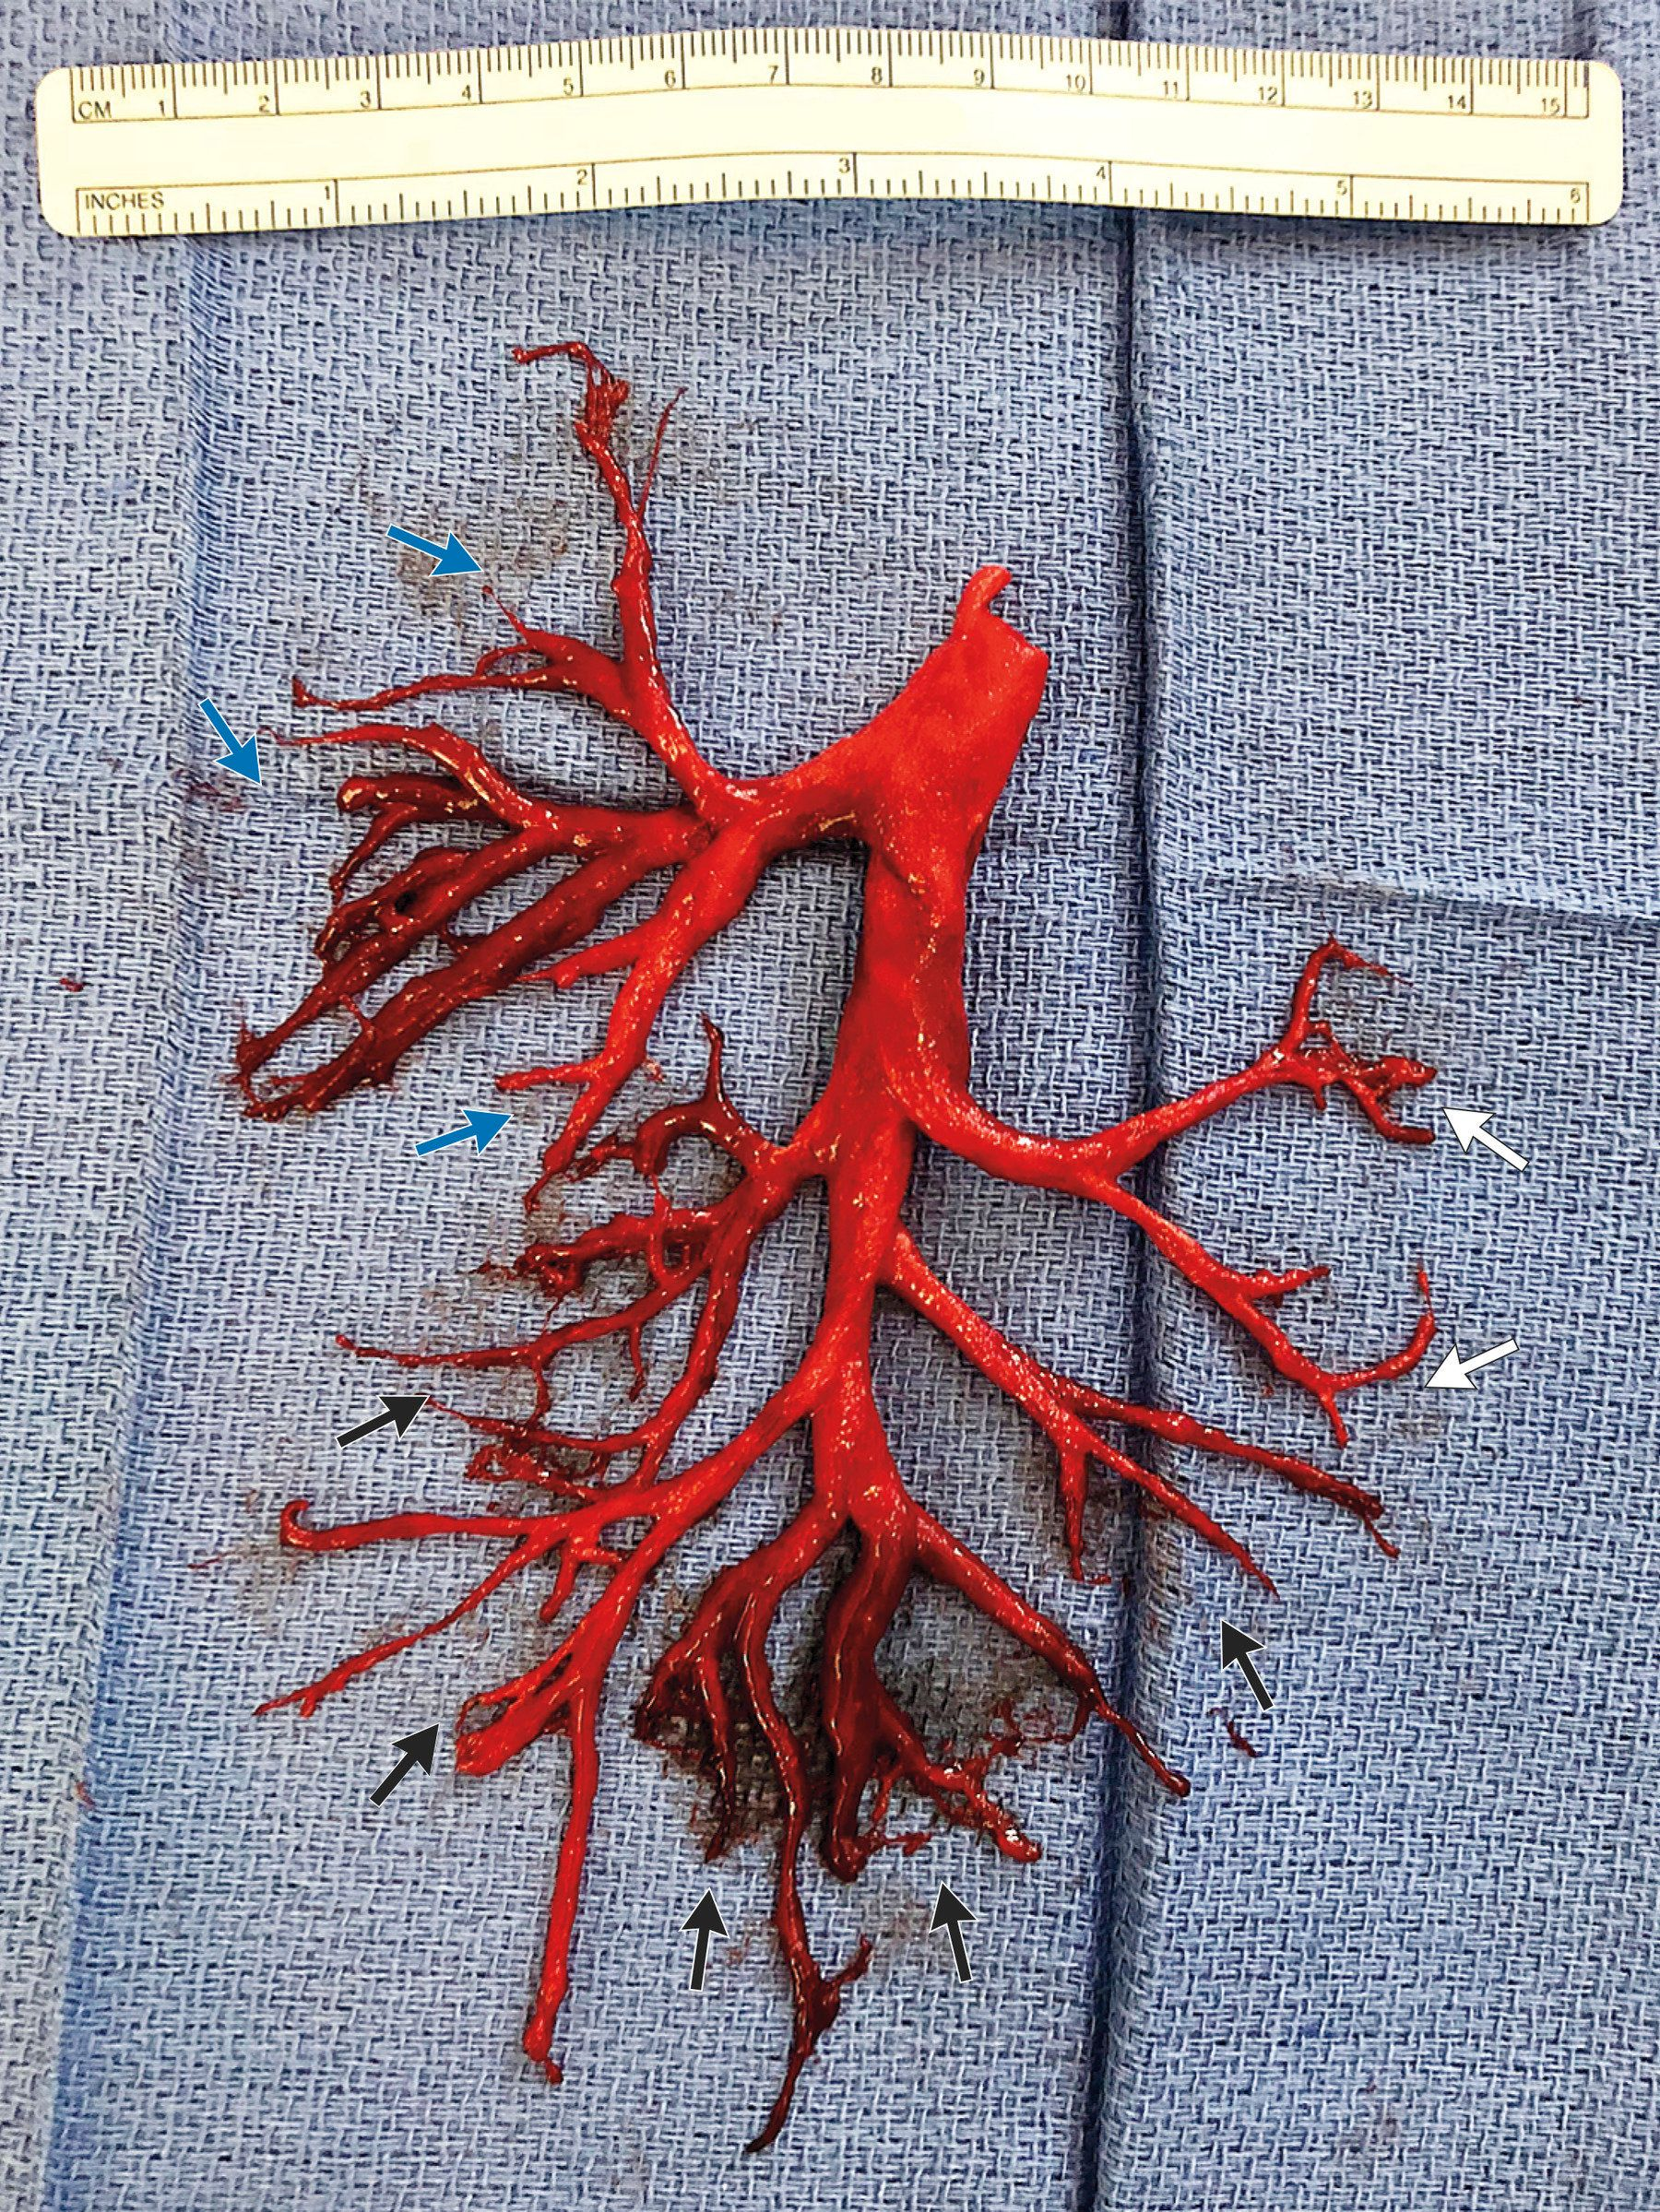 The rare blood clot, which is a cast of the right bronchial tree.